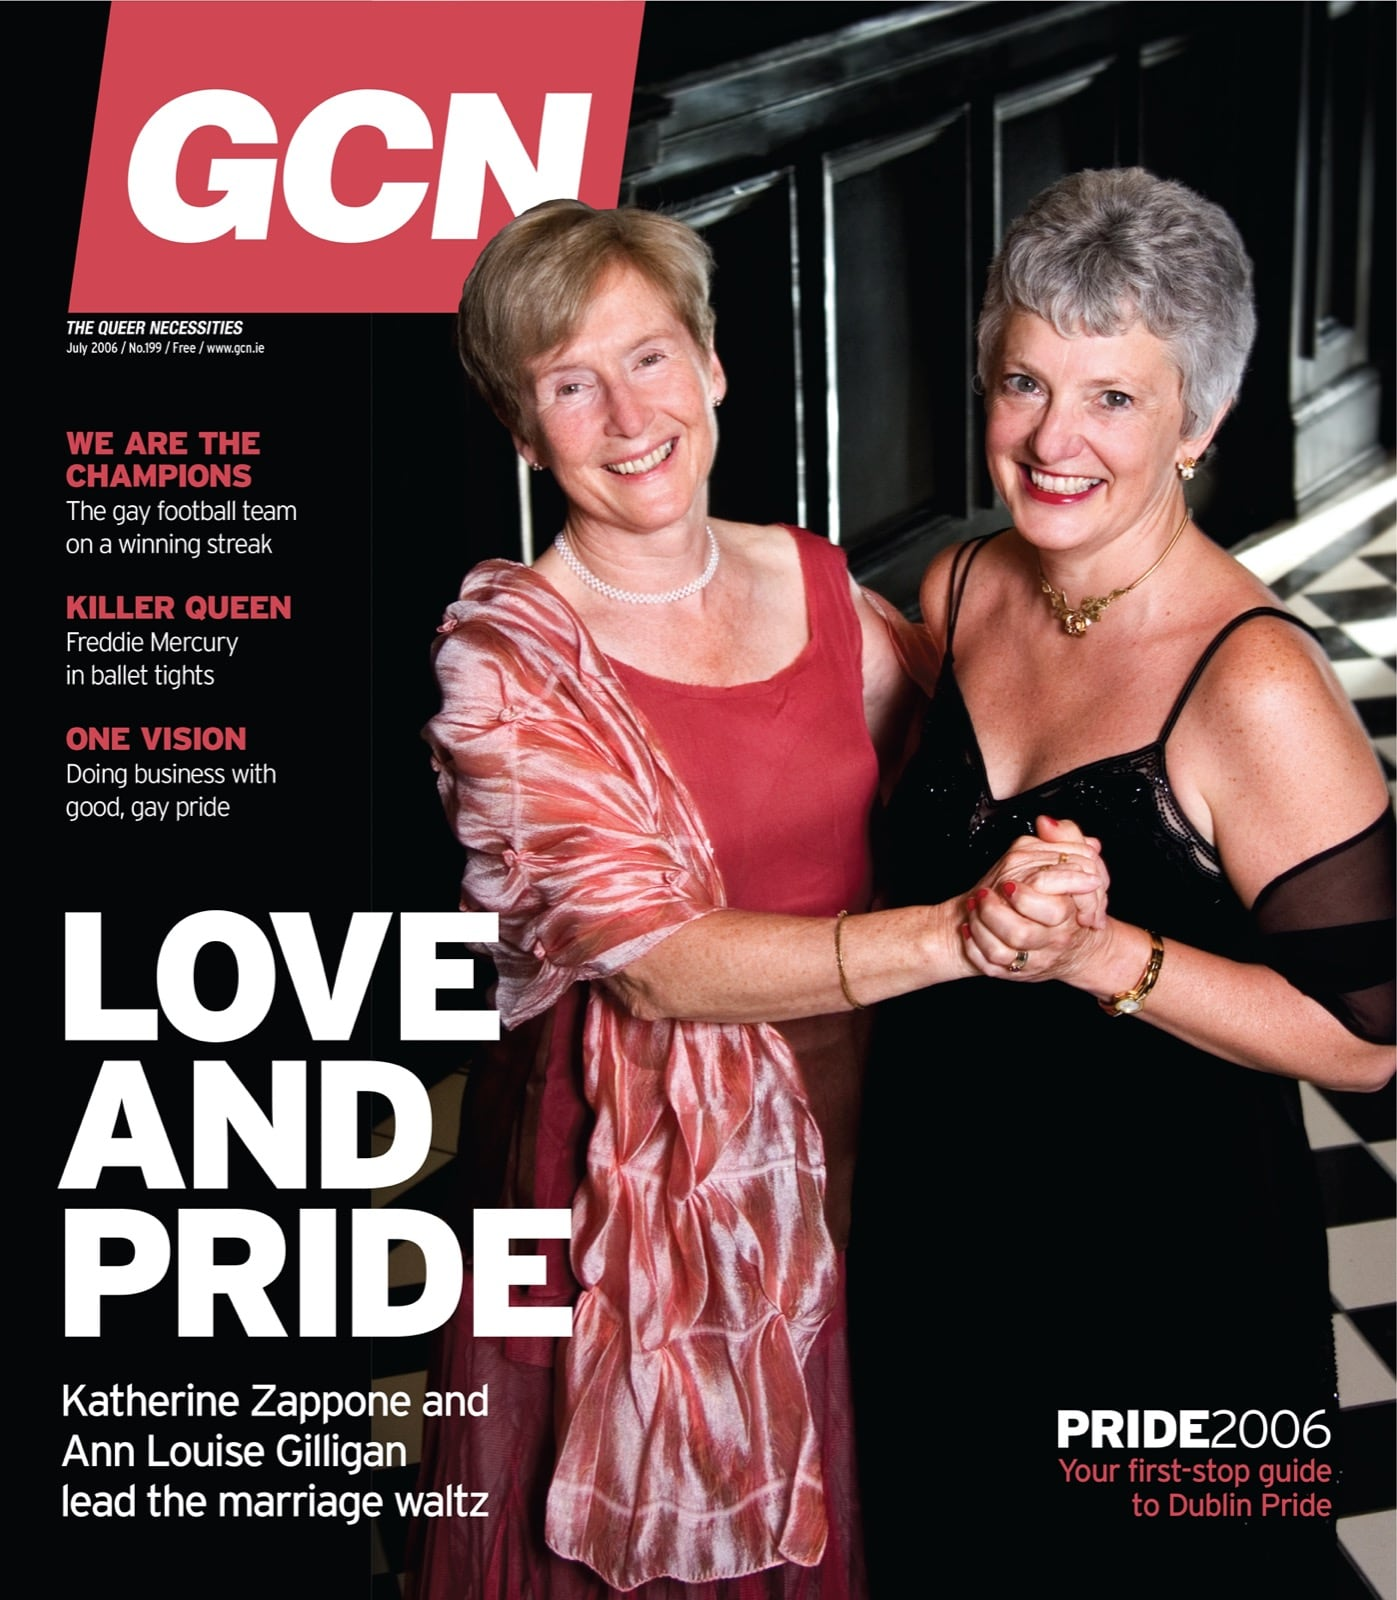 Some of GCN's covers from 2003 with Katherine Zappone and her wife Ann Louise Gilligan embracing on the cover.